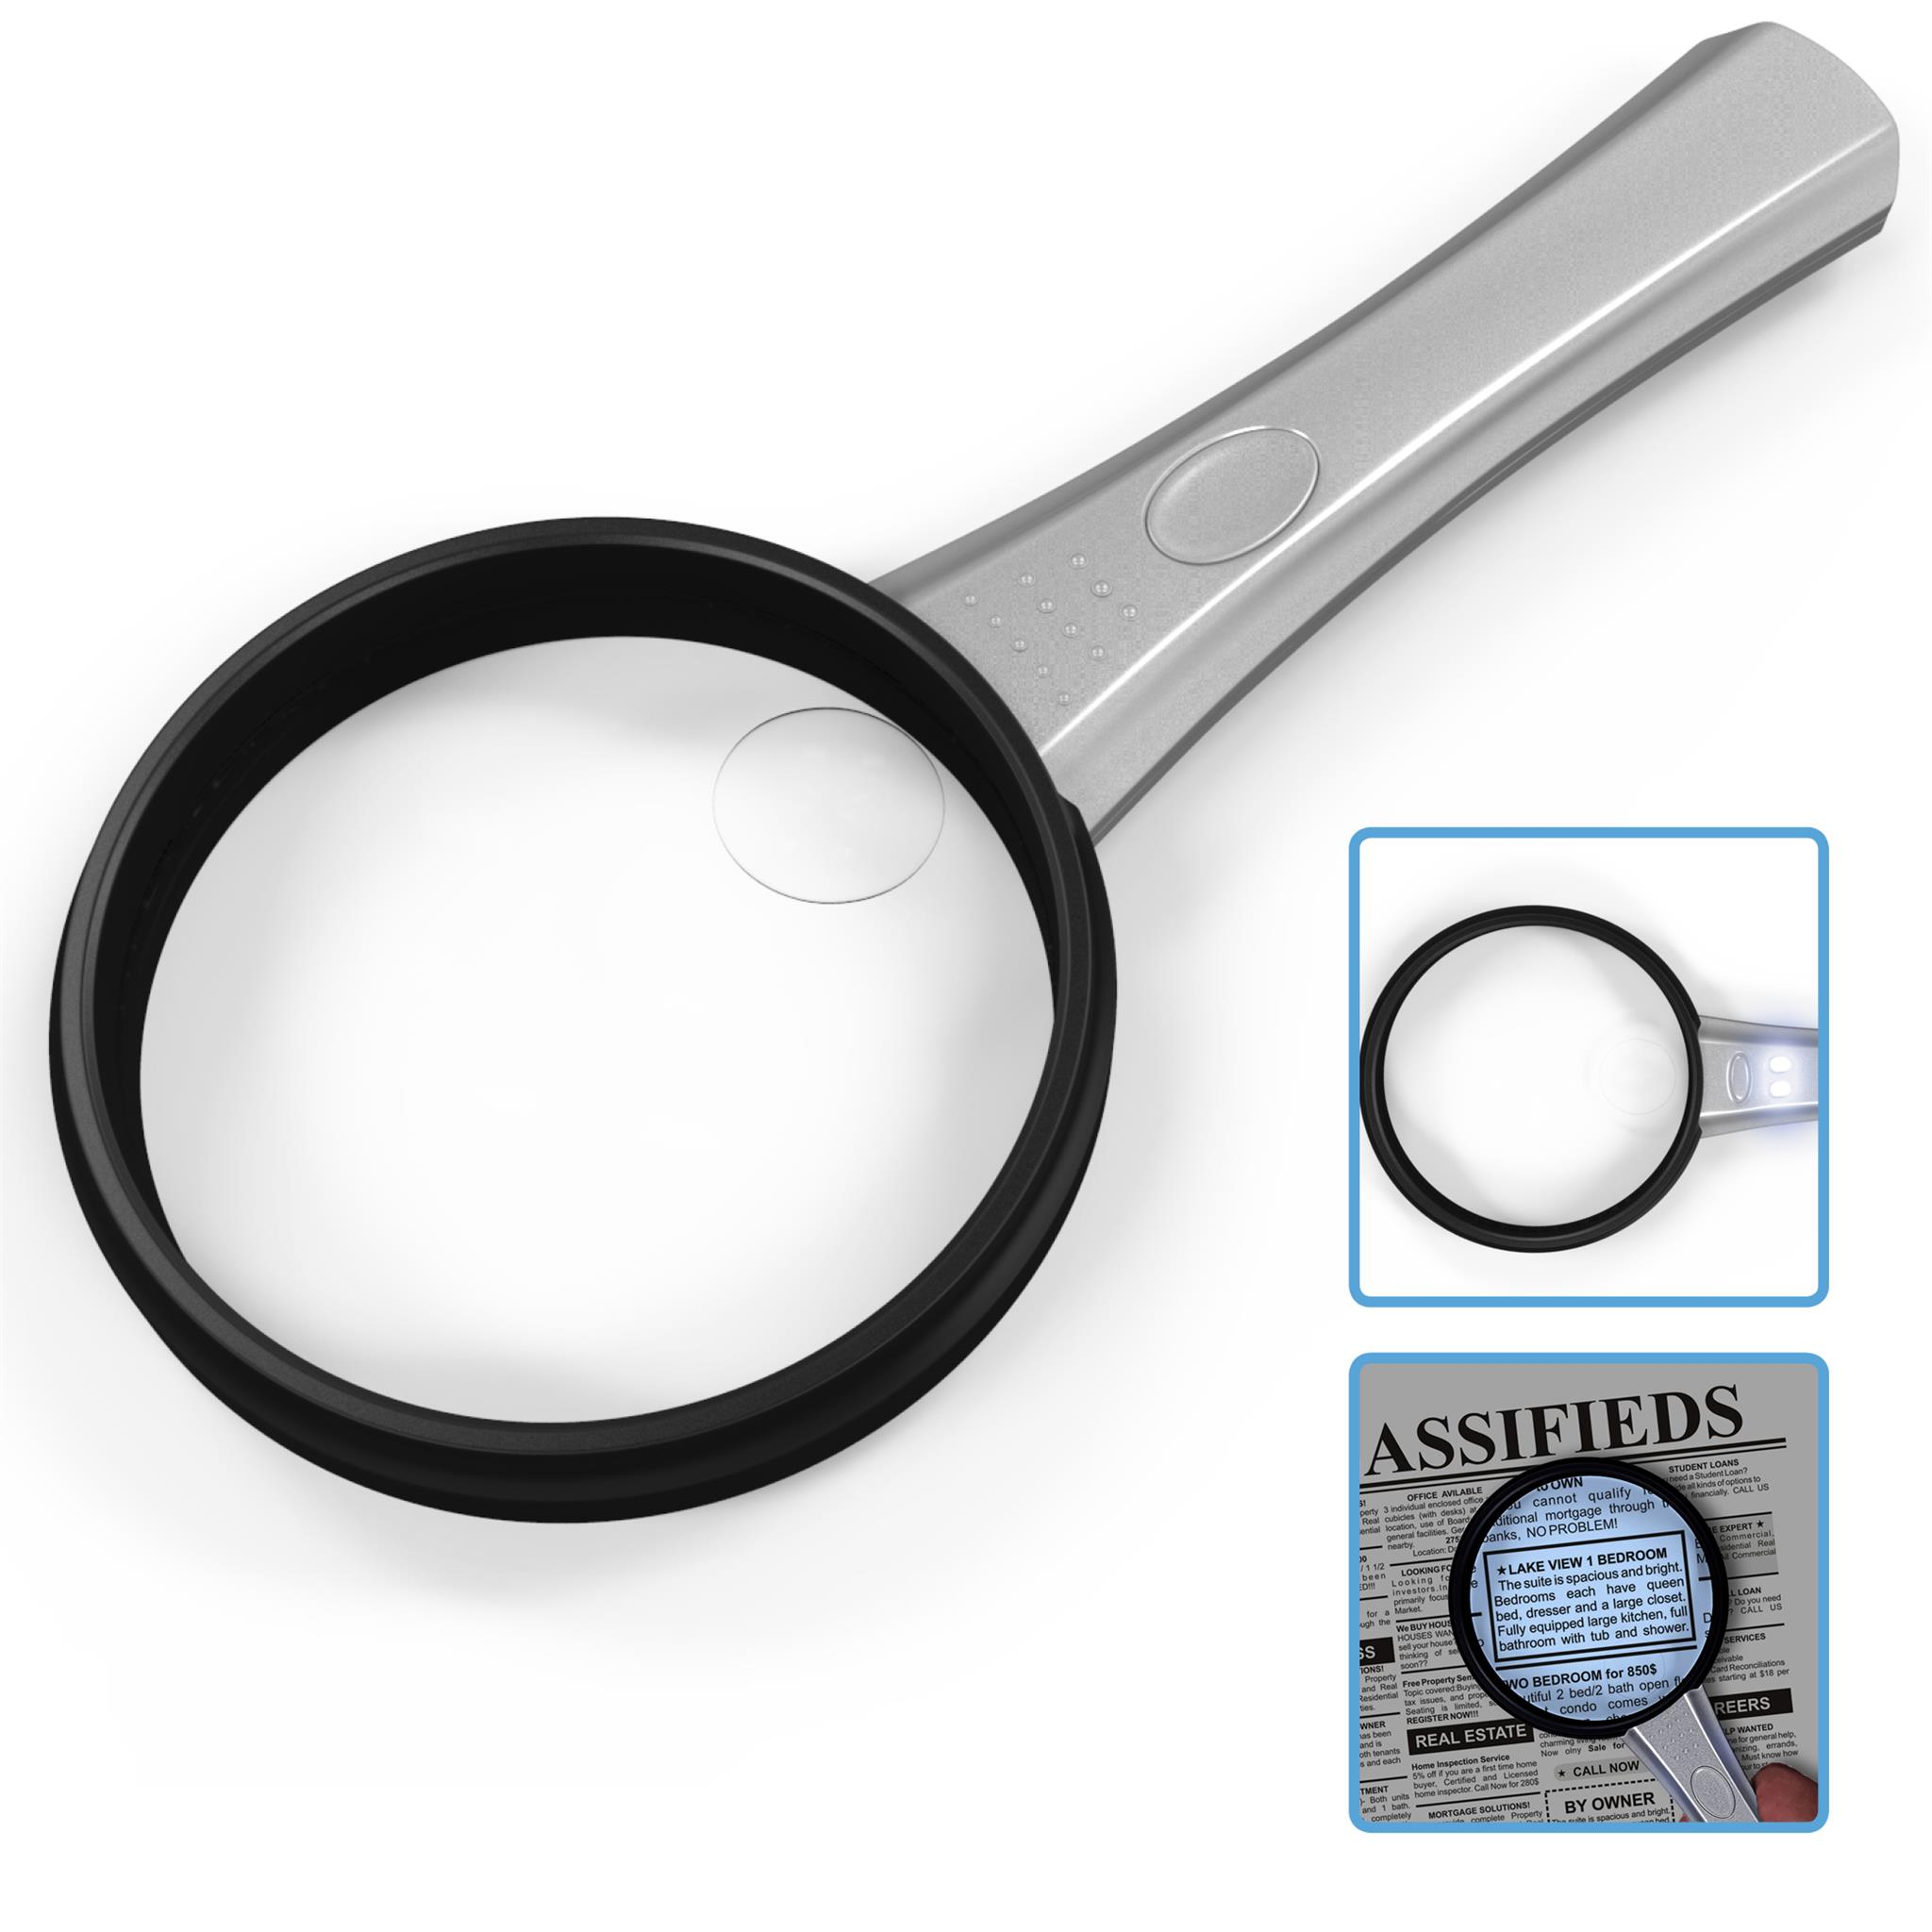 MagniPros 2X Handheld Magnifying Glass with 2 Ultra Bright LED Lights Reading Magnifier with 4X Spot Lens Ideal for Small Prints, Maps, Macular Degeneration